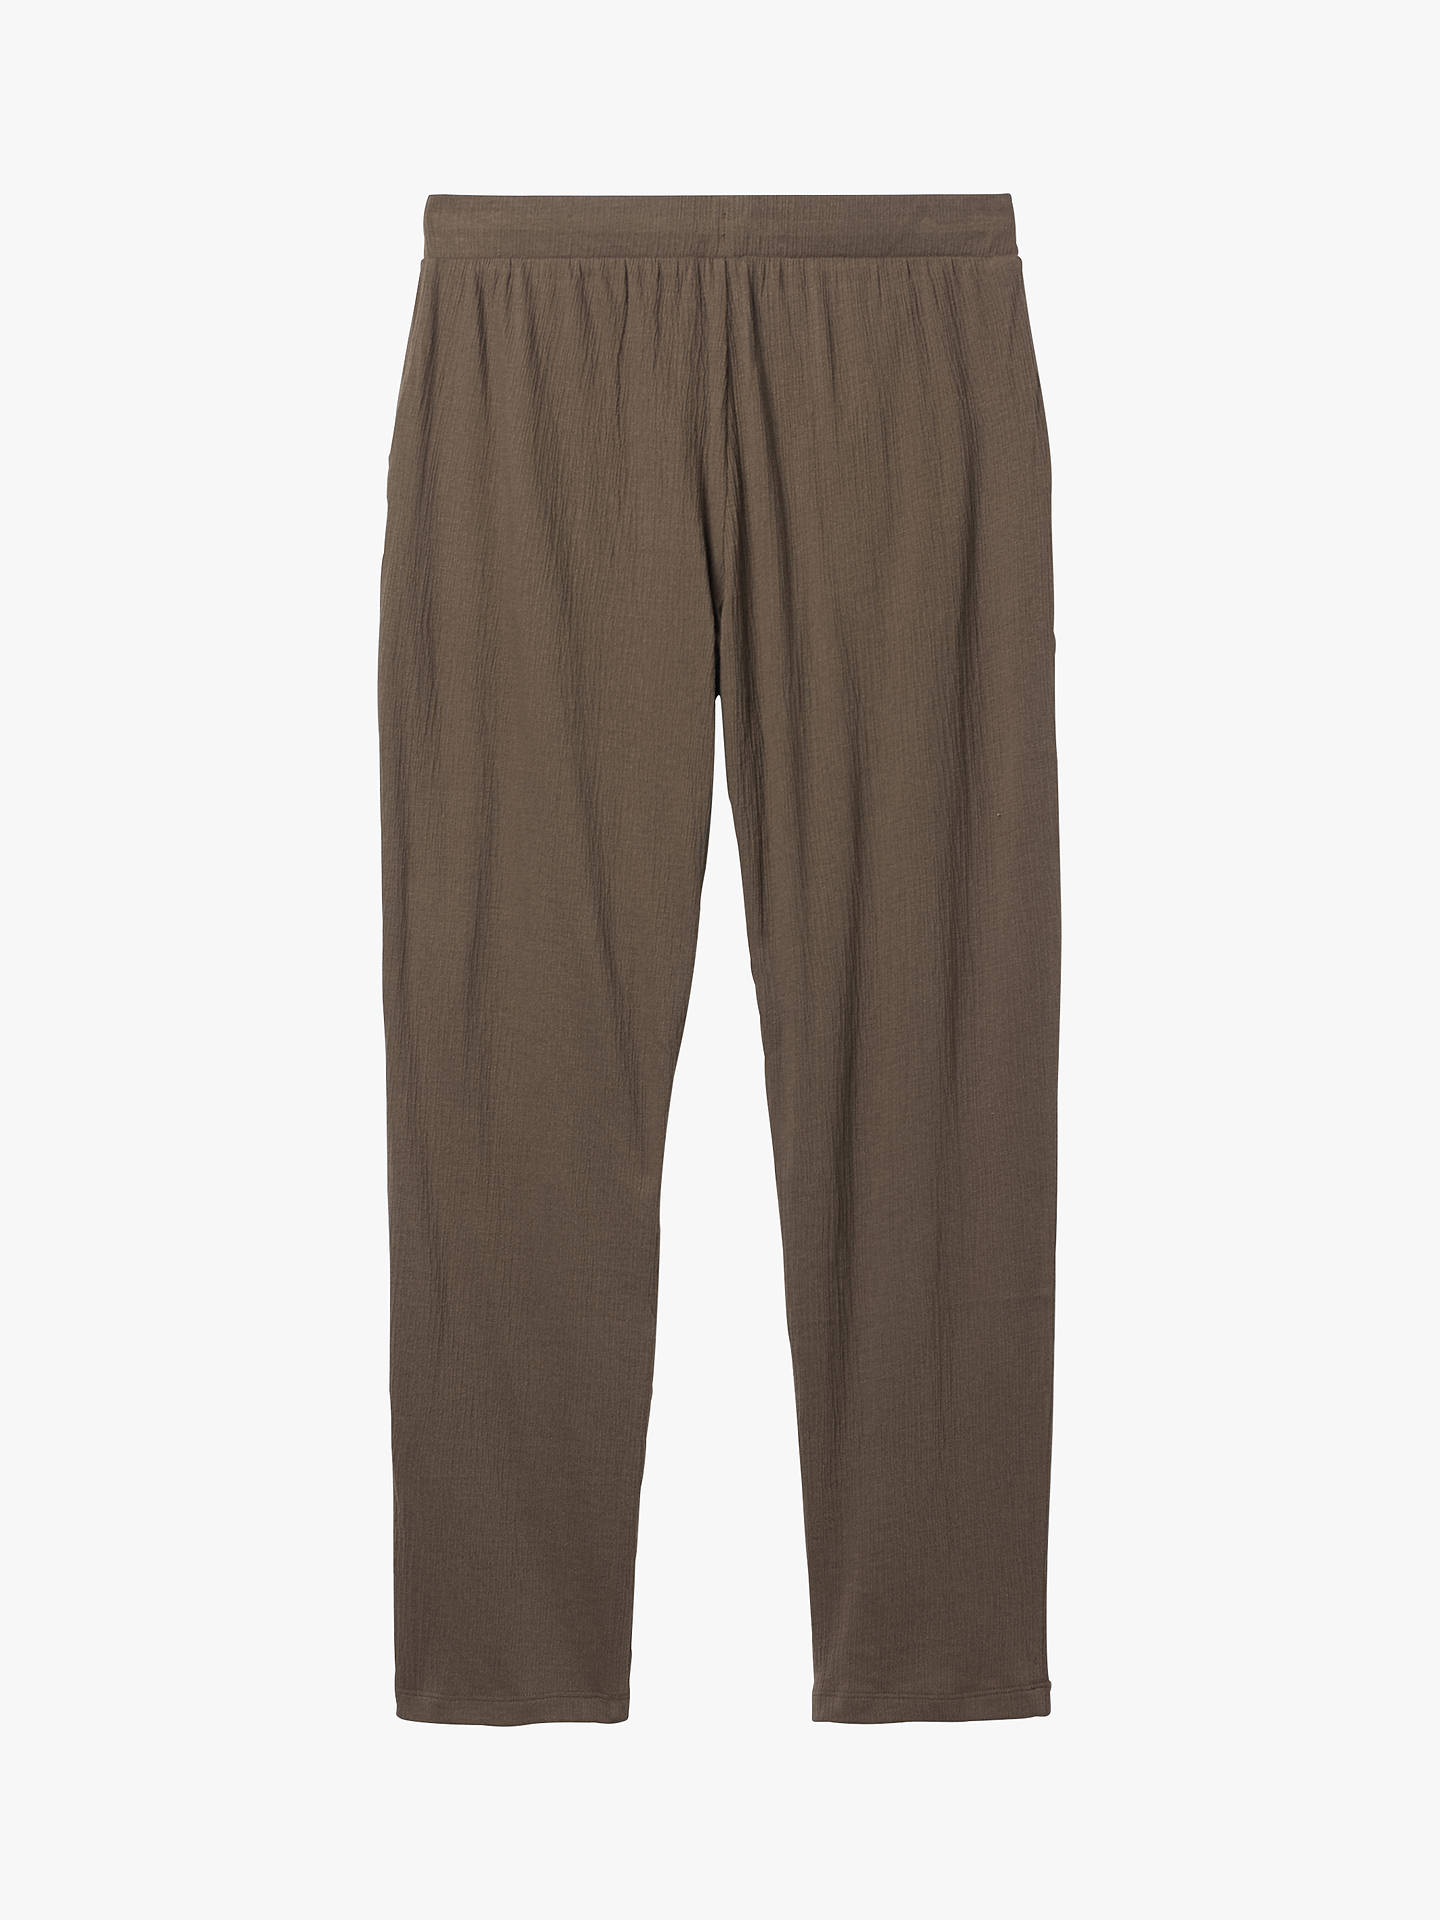 BuyWhite Stuff Clea Trousers, Khaki, 6 Online at johnlewis.com